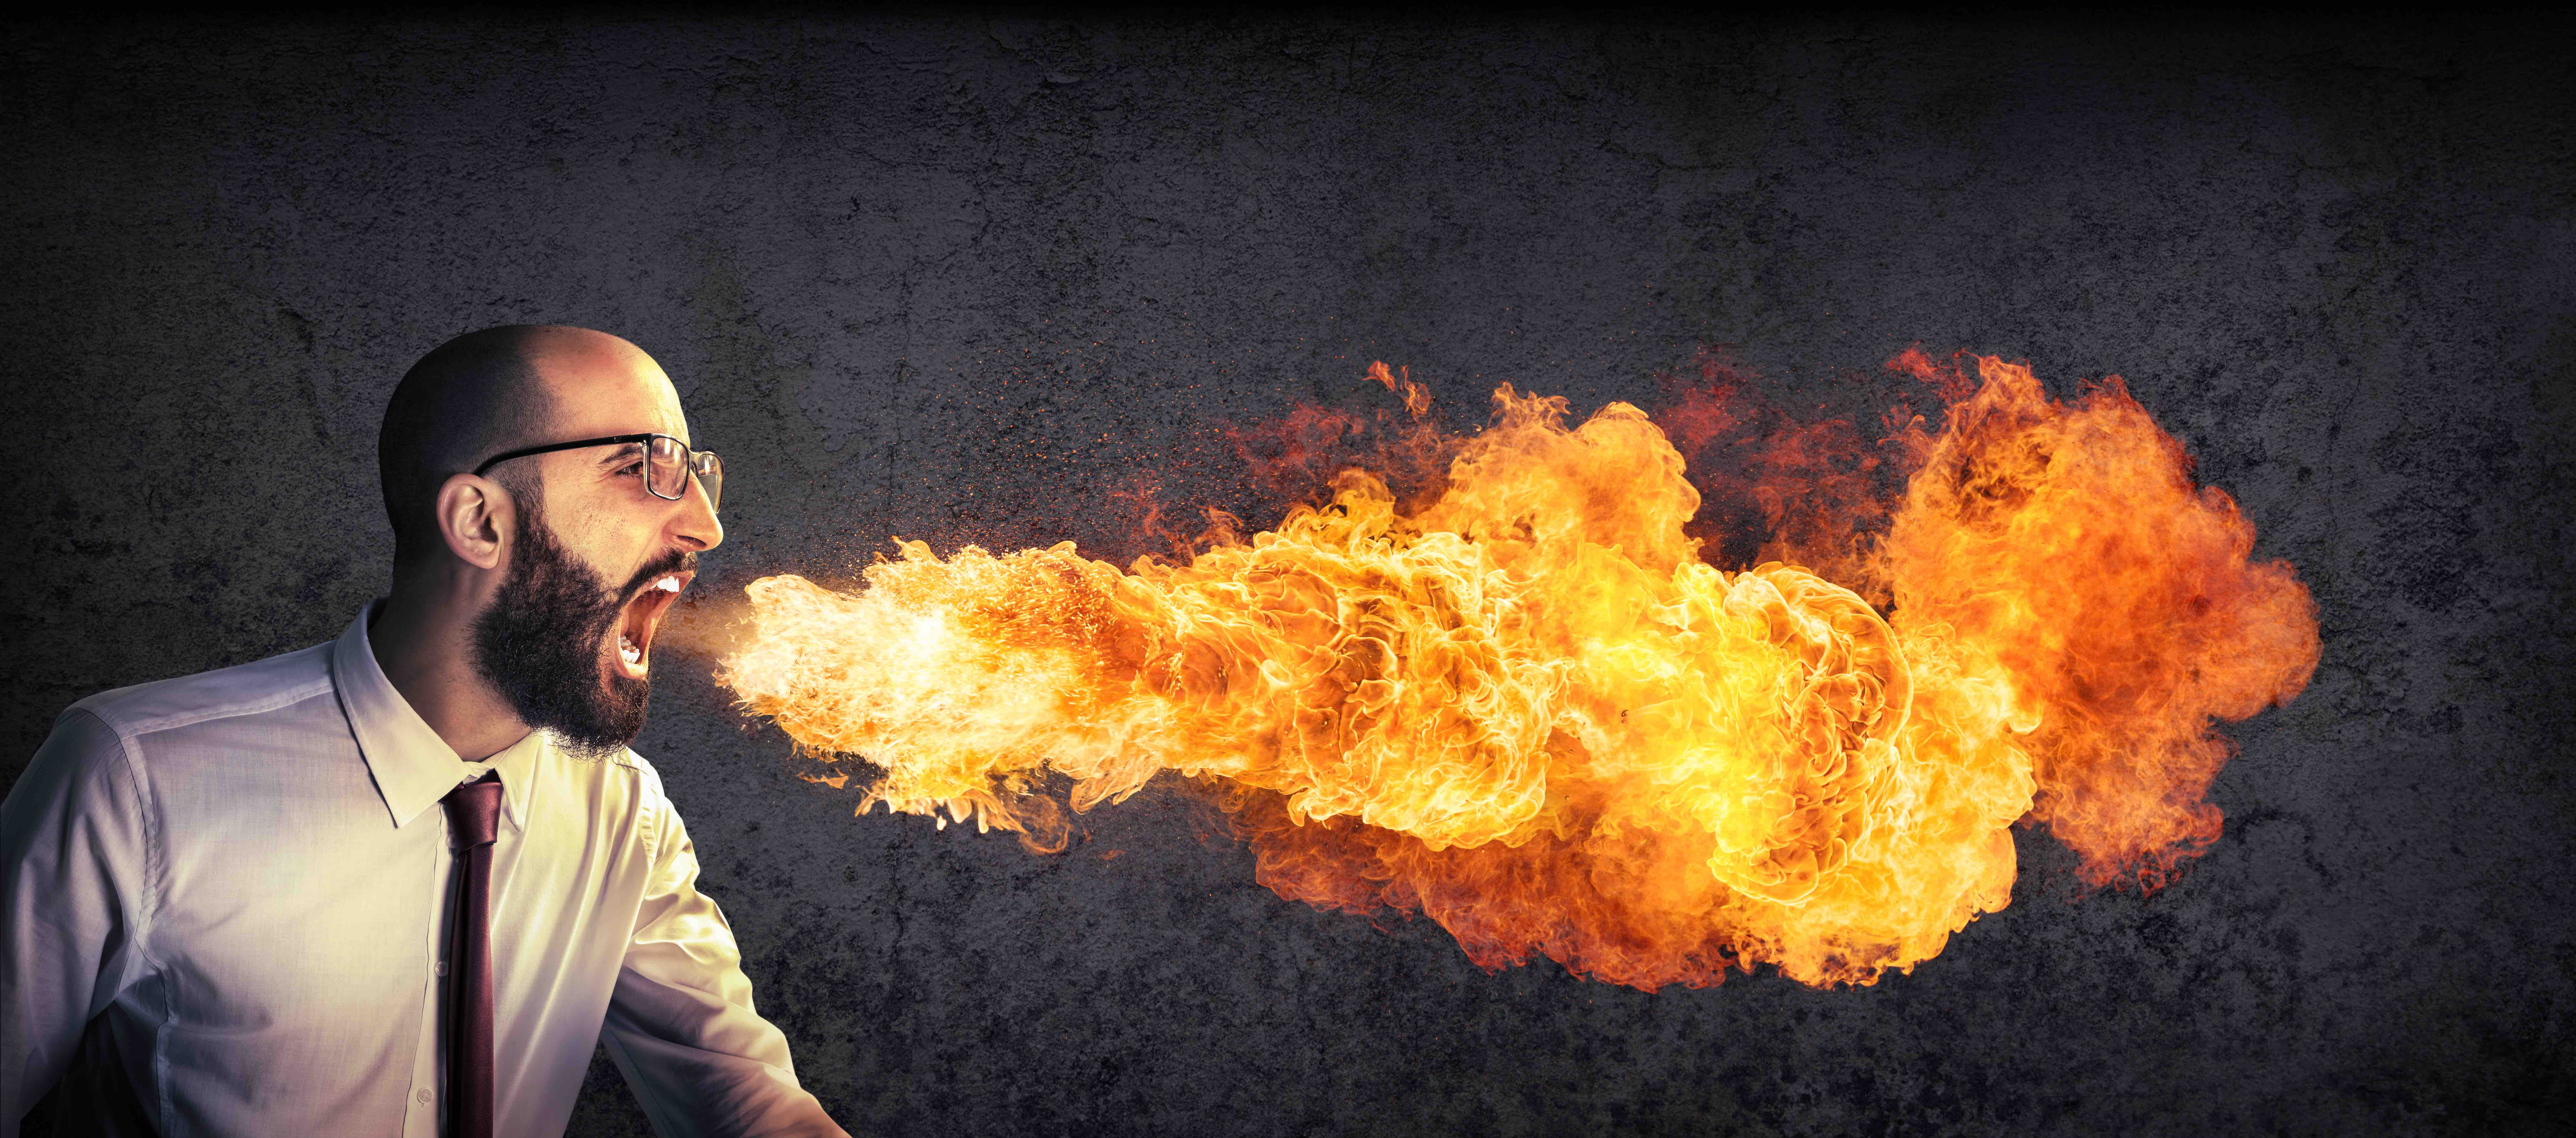 Anger: Are You Reasonable? (Part 2)